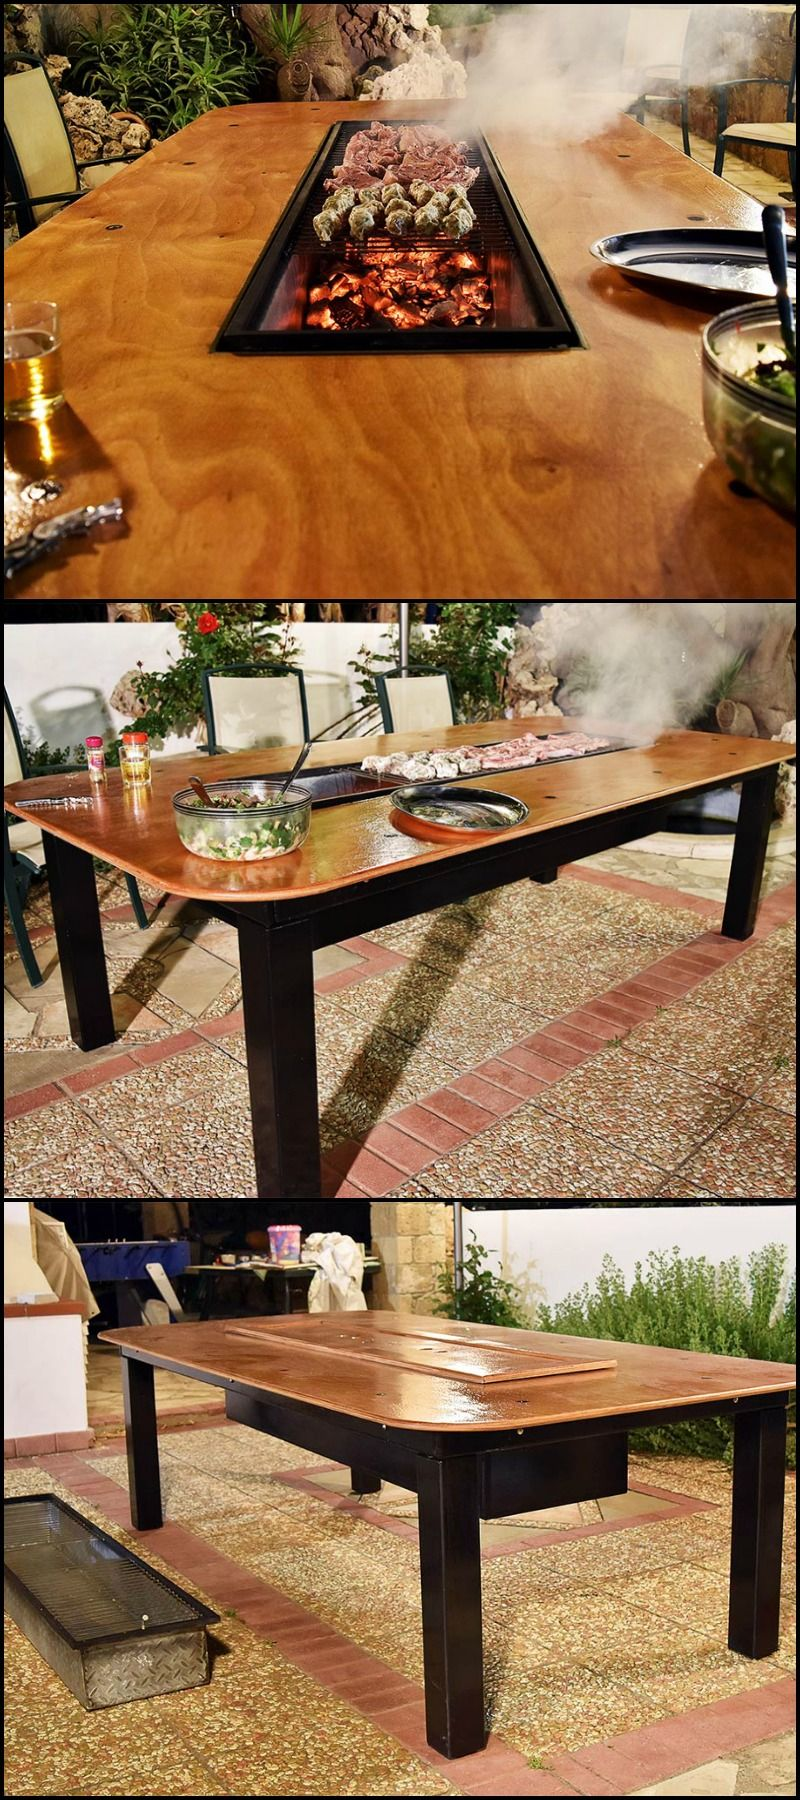 How To Build A Barbecue Grill And Table Combo Outdoor